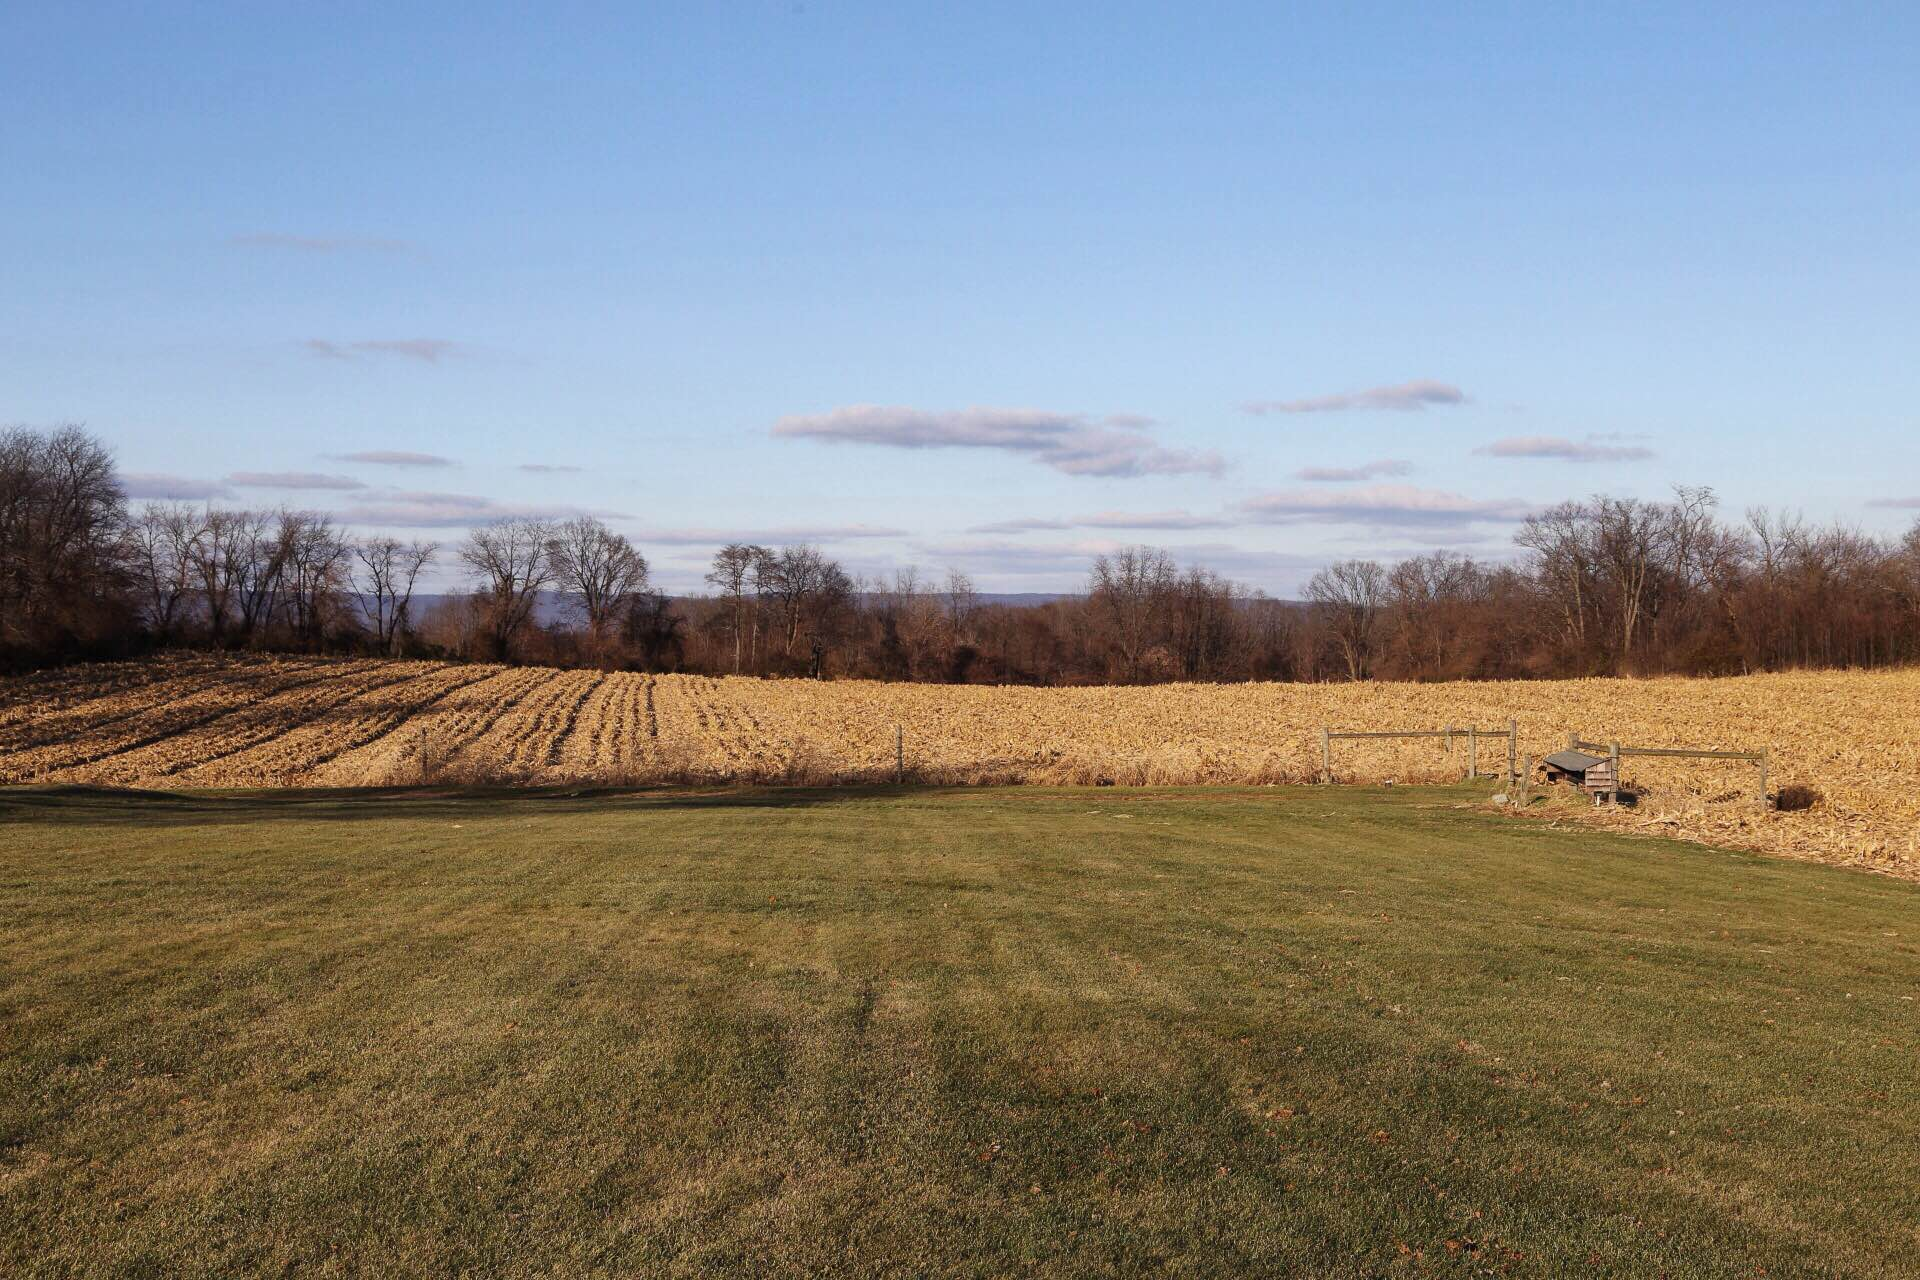 The future location of our u-pick orchard and nursery with the corn down. We found a local farmer to help with prepping and seeding the ground come spring.